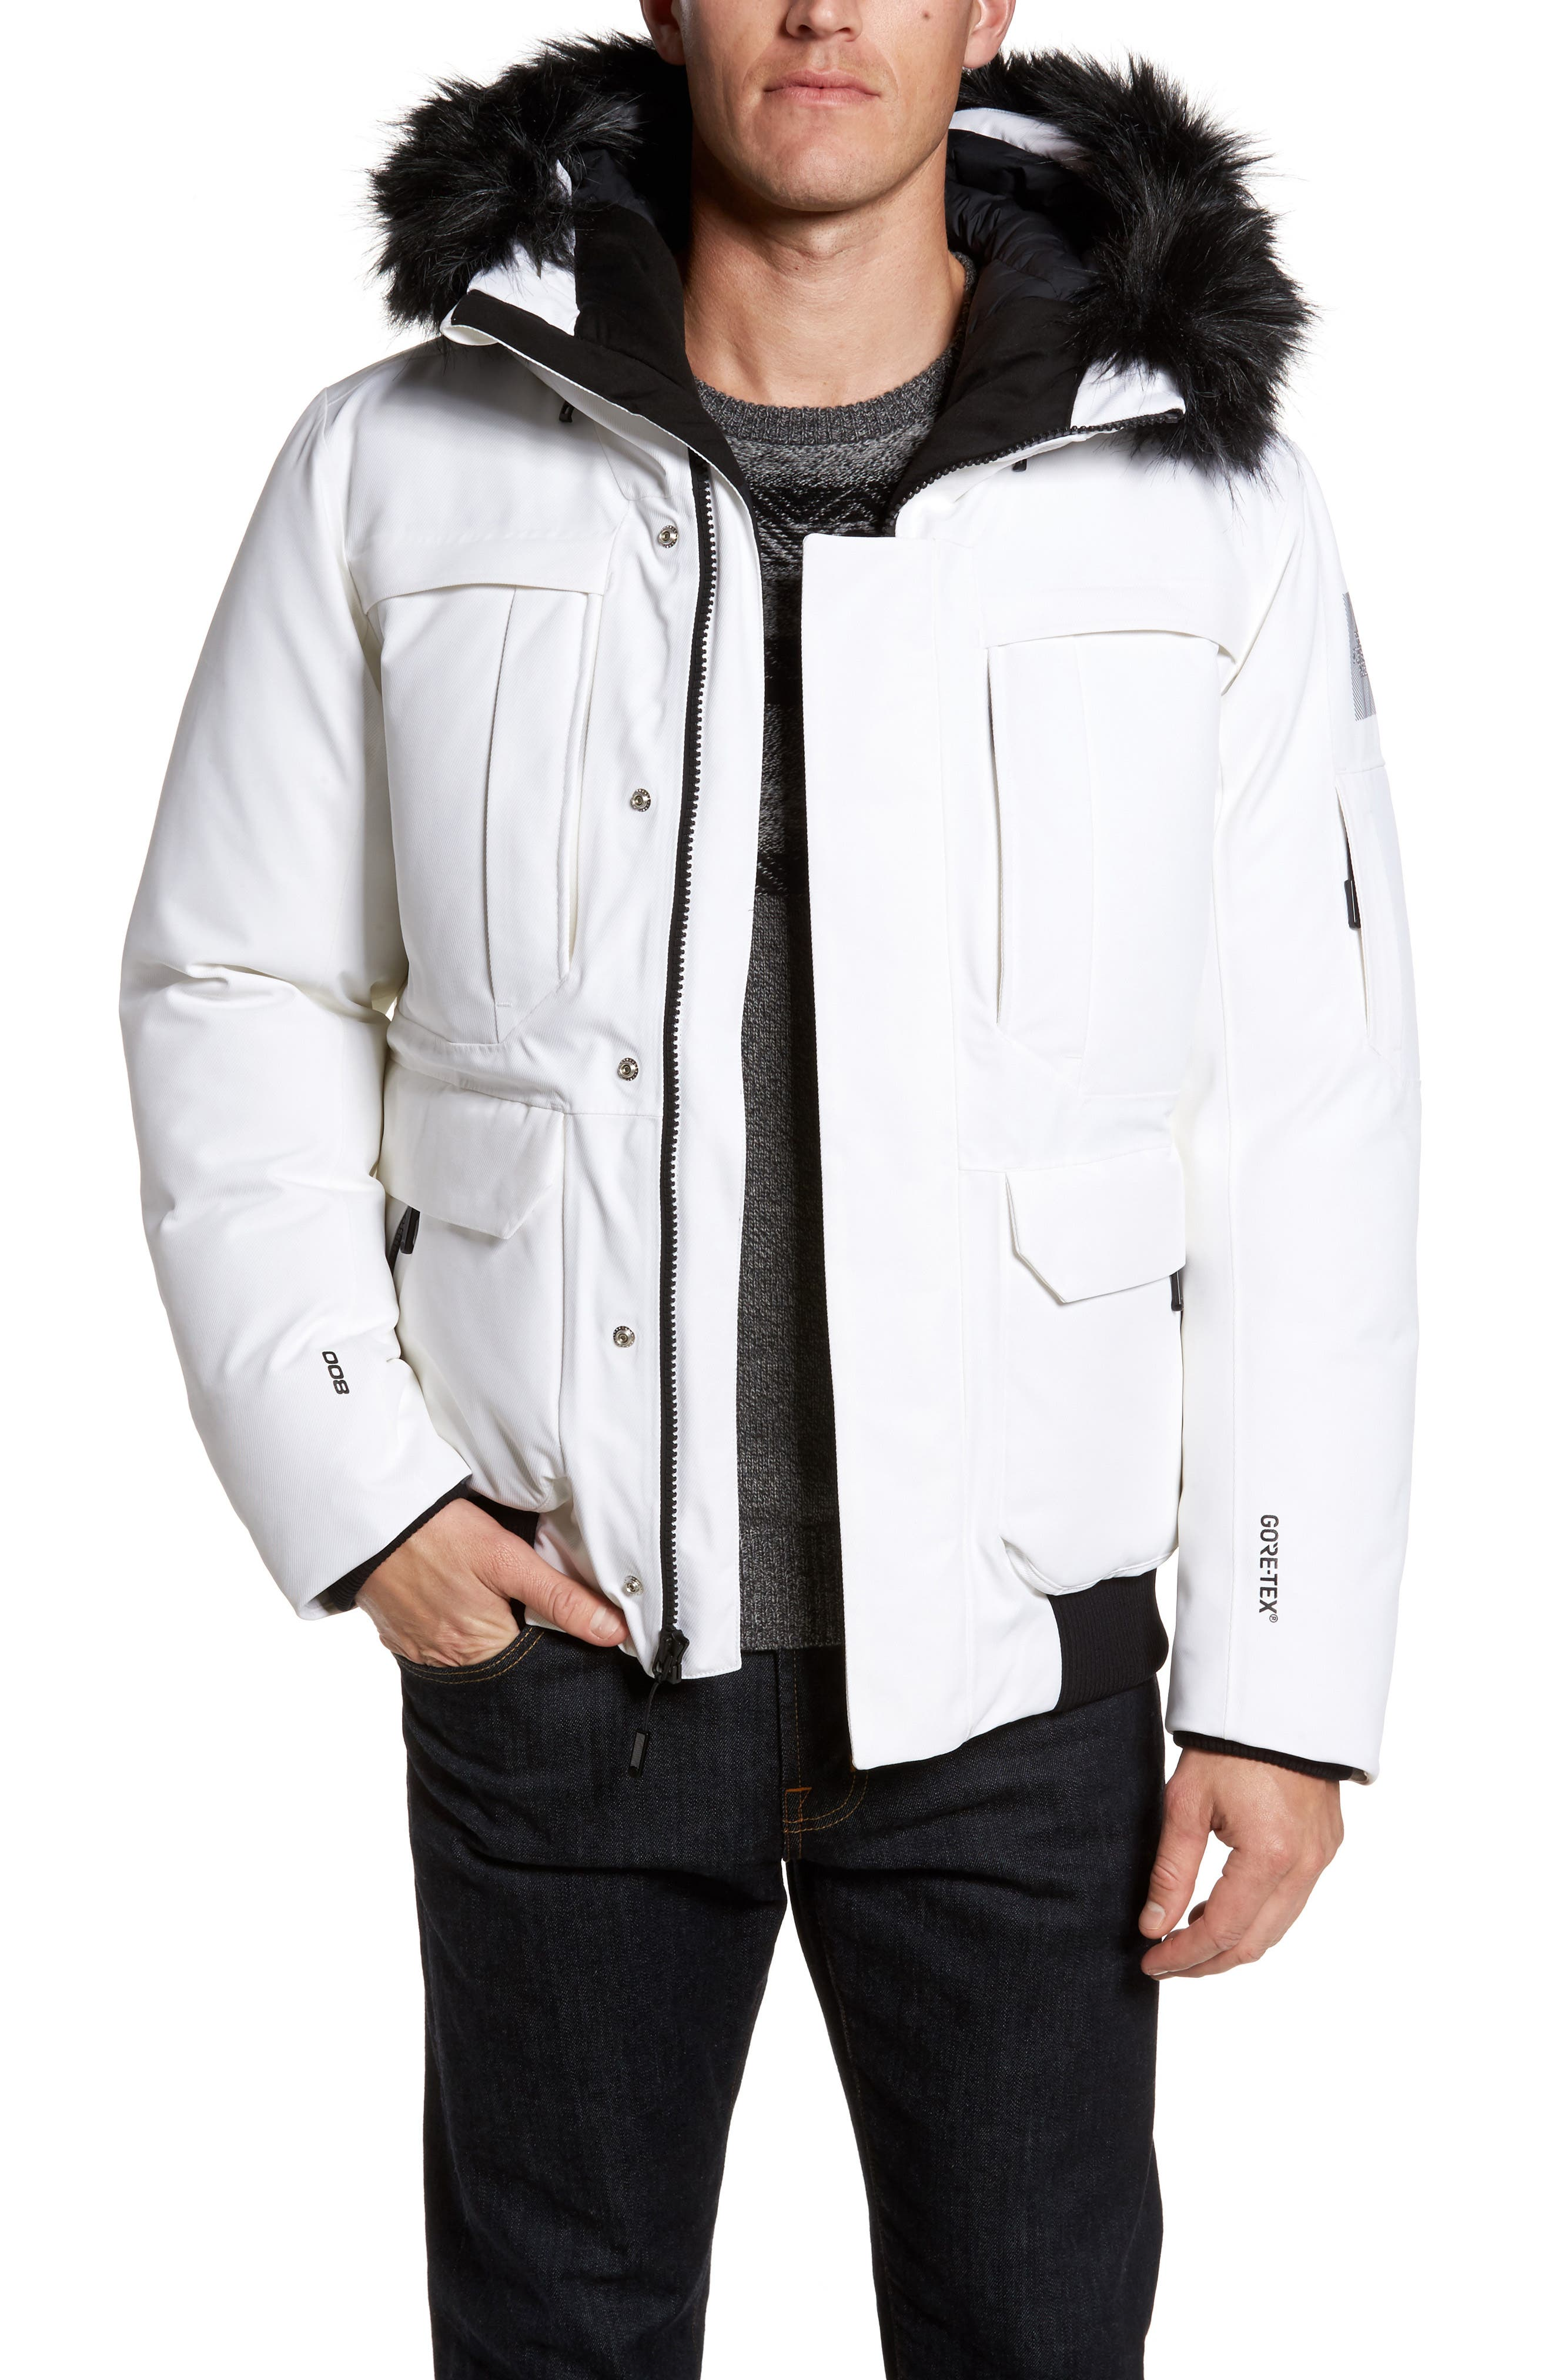 Cryos Expedition Gore-Tex<sup>®</sup> Bomber Jacket,                             Main thumbnail 3, color,